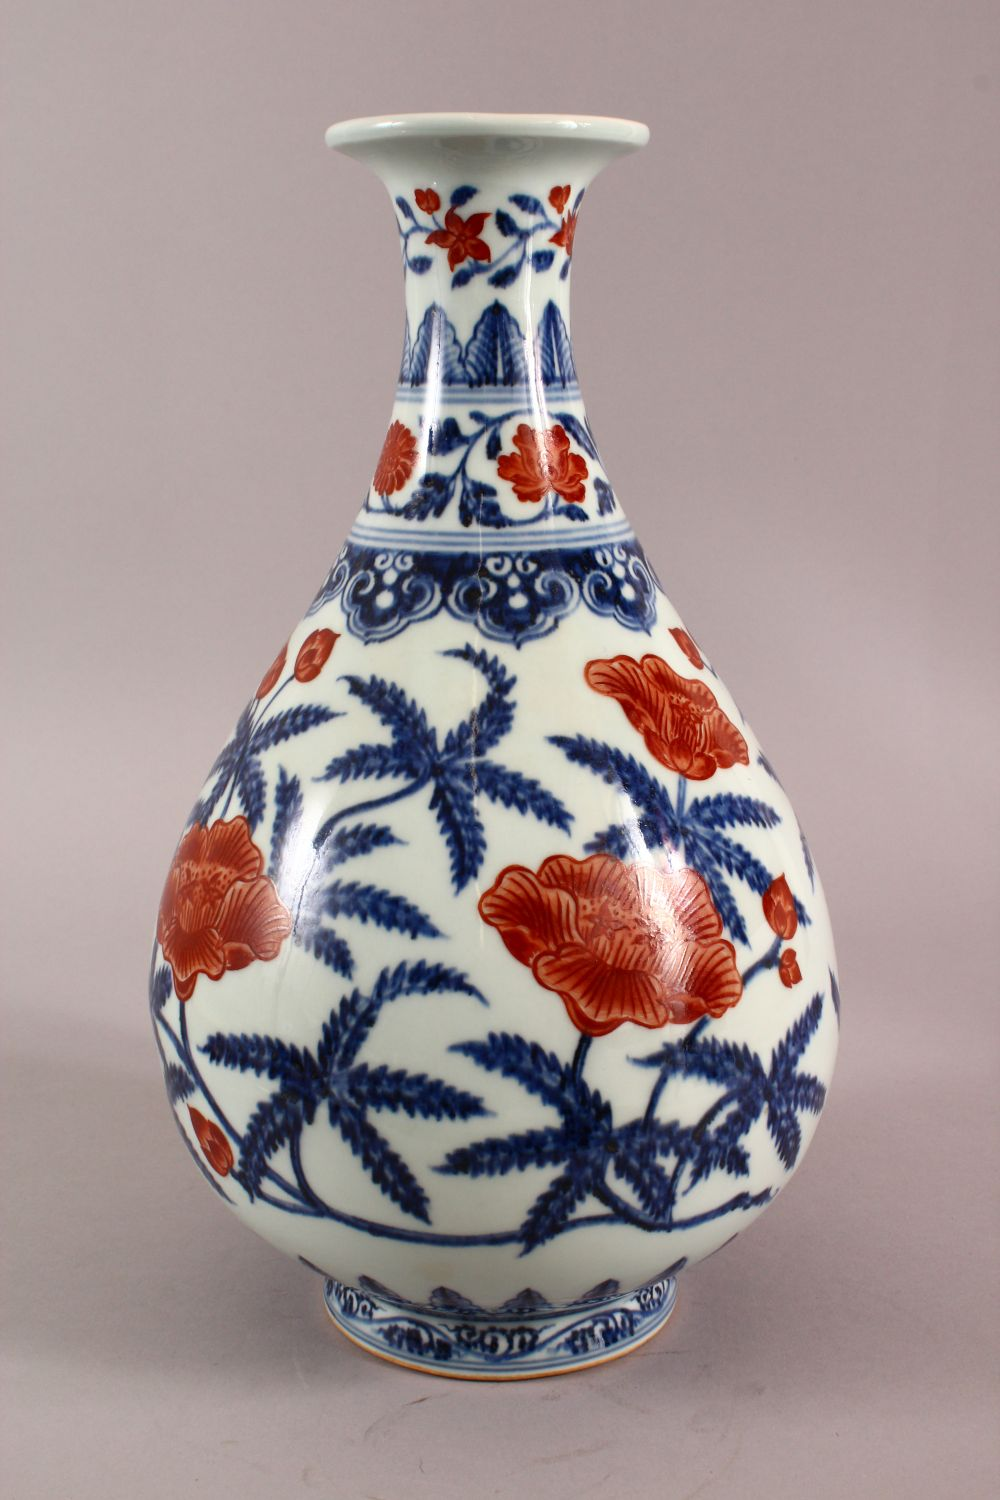 A CHINSE UNDEGLAZED BLUE & COPPER RED LOTUS PORCELAIN VASE, the base with a six character mark, 34cm - Image 2 of 7